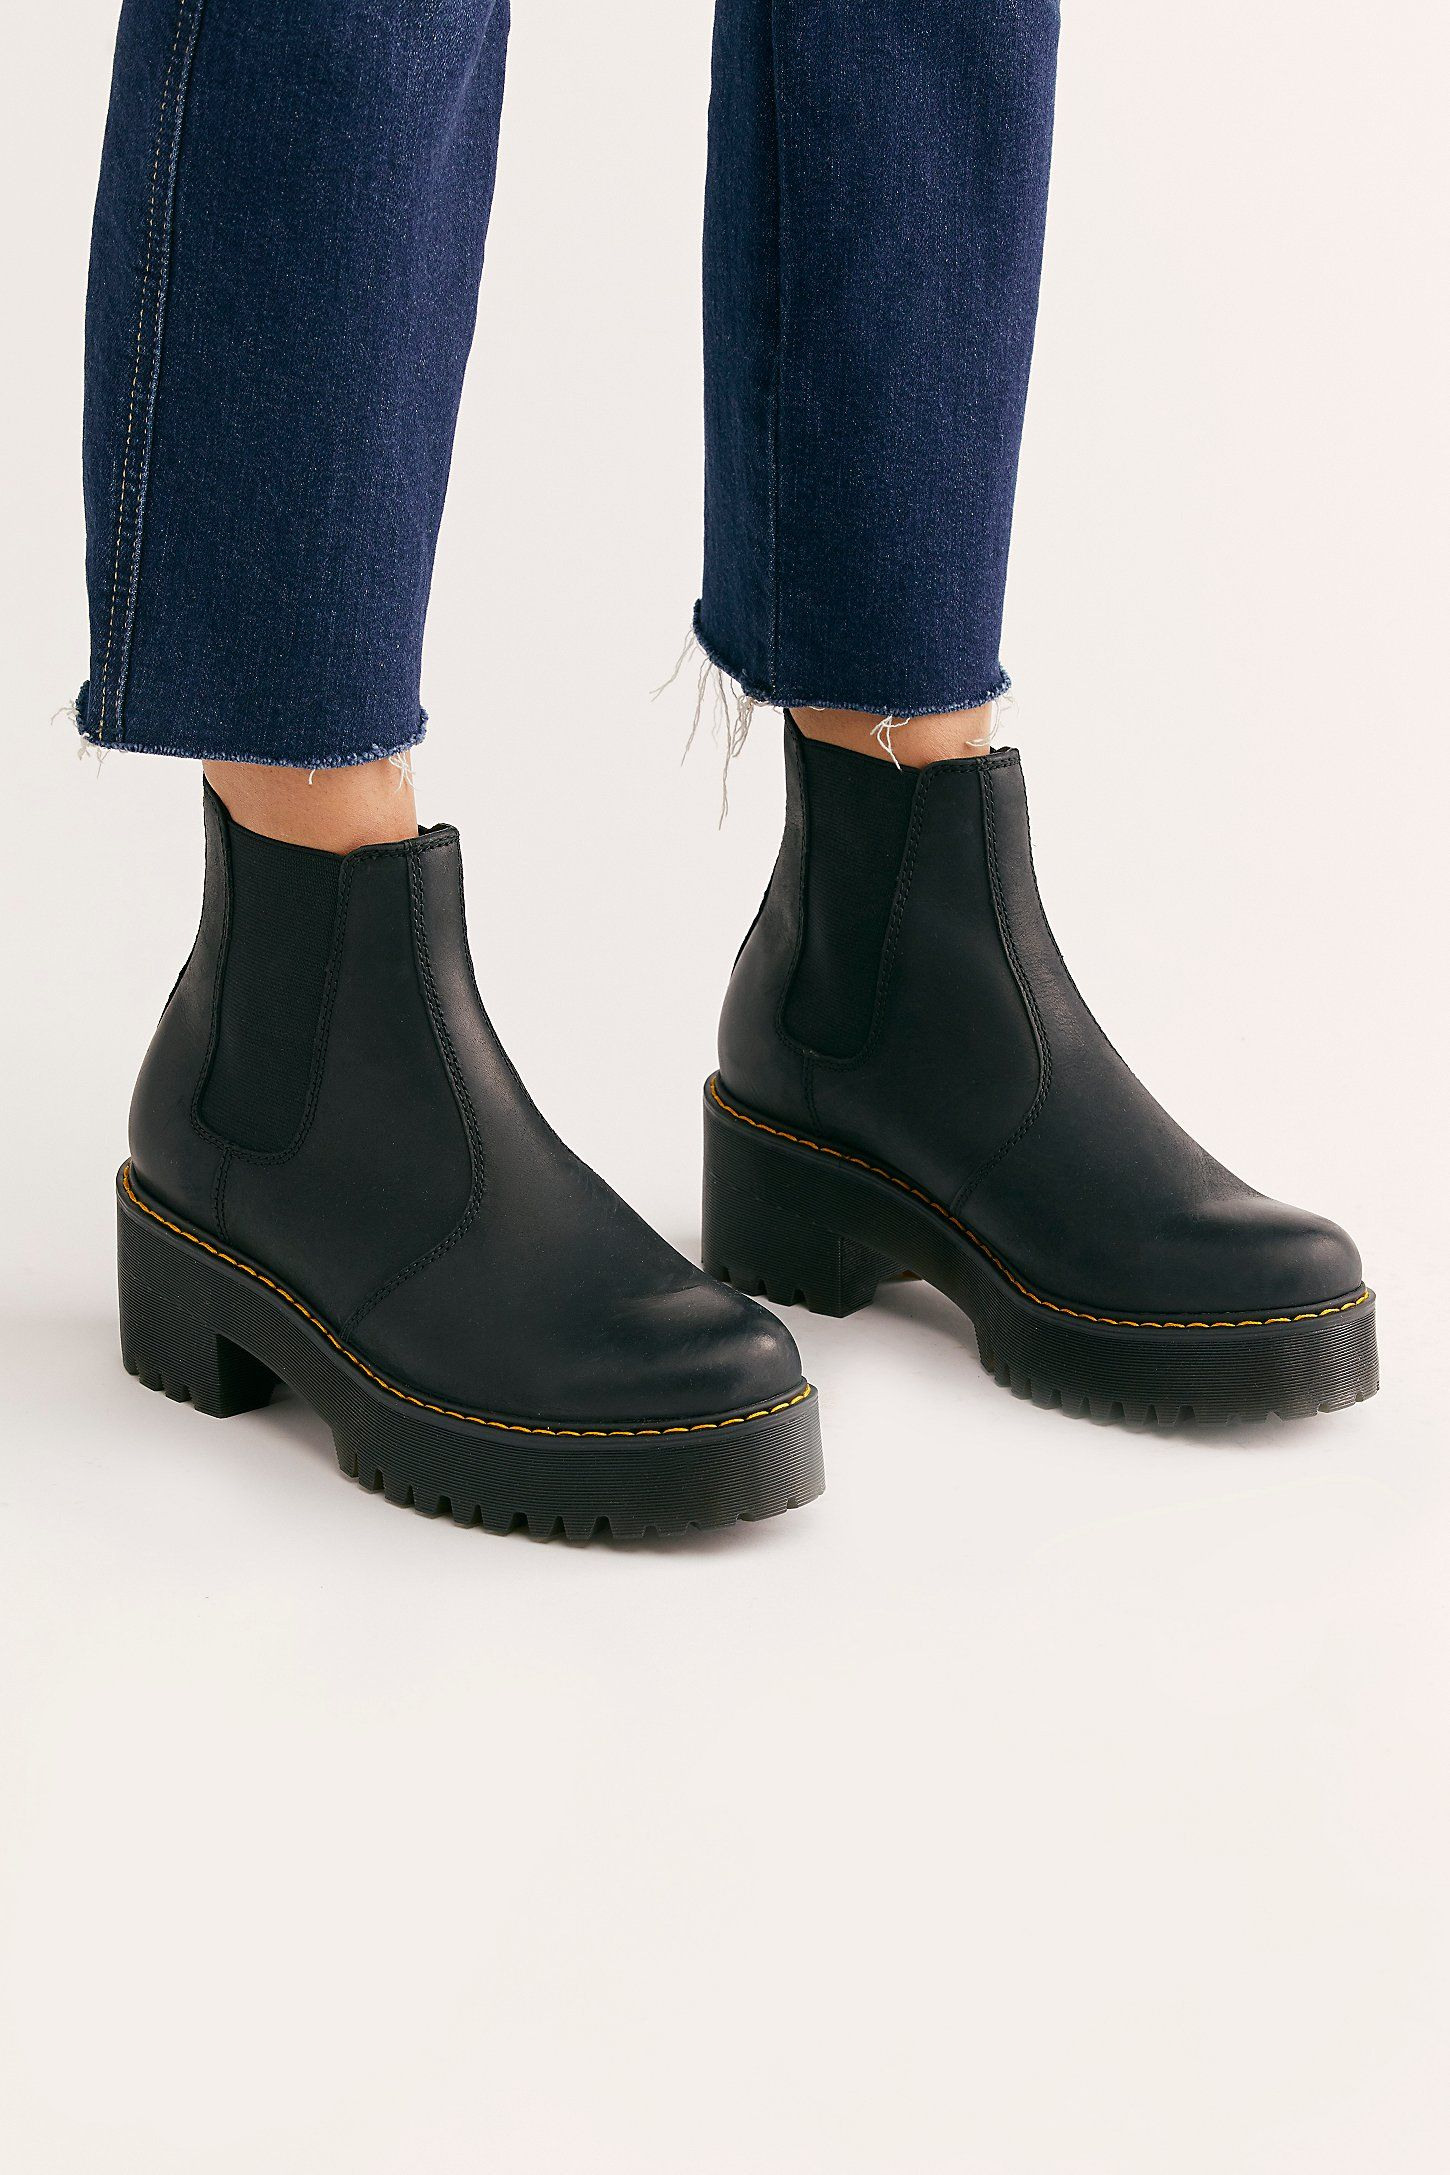 84f36e199d3 Dr. Martens Rometty Chelsea Boot in 2019 | Fashion | Shoes, Shoe ...